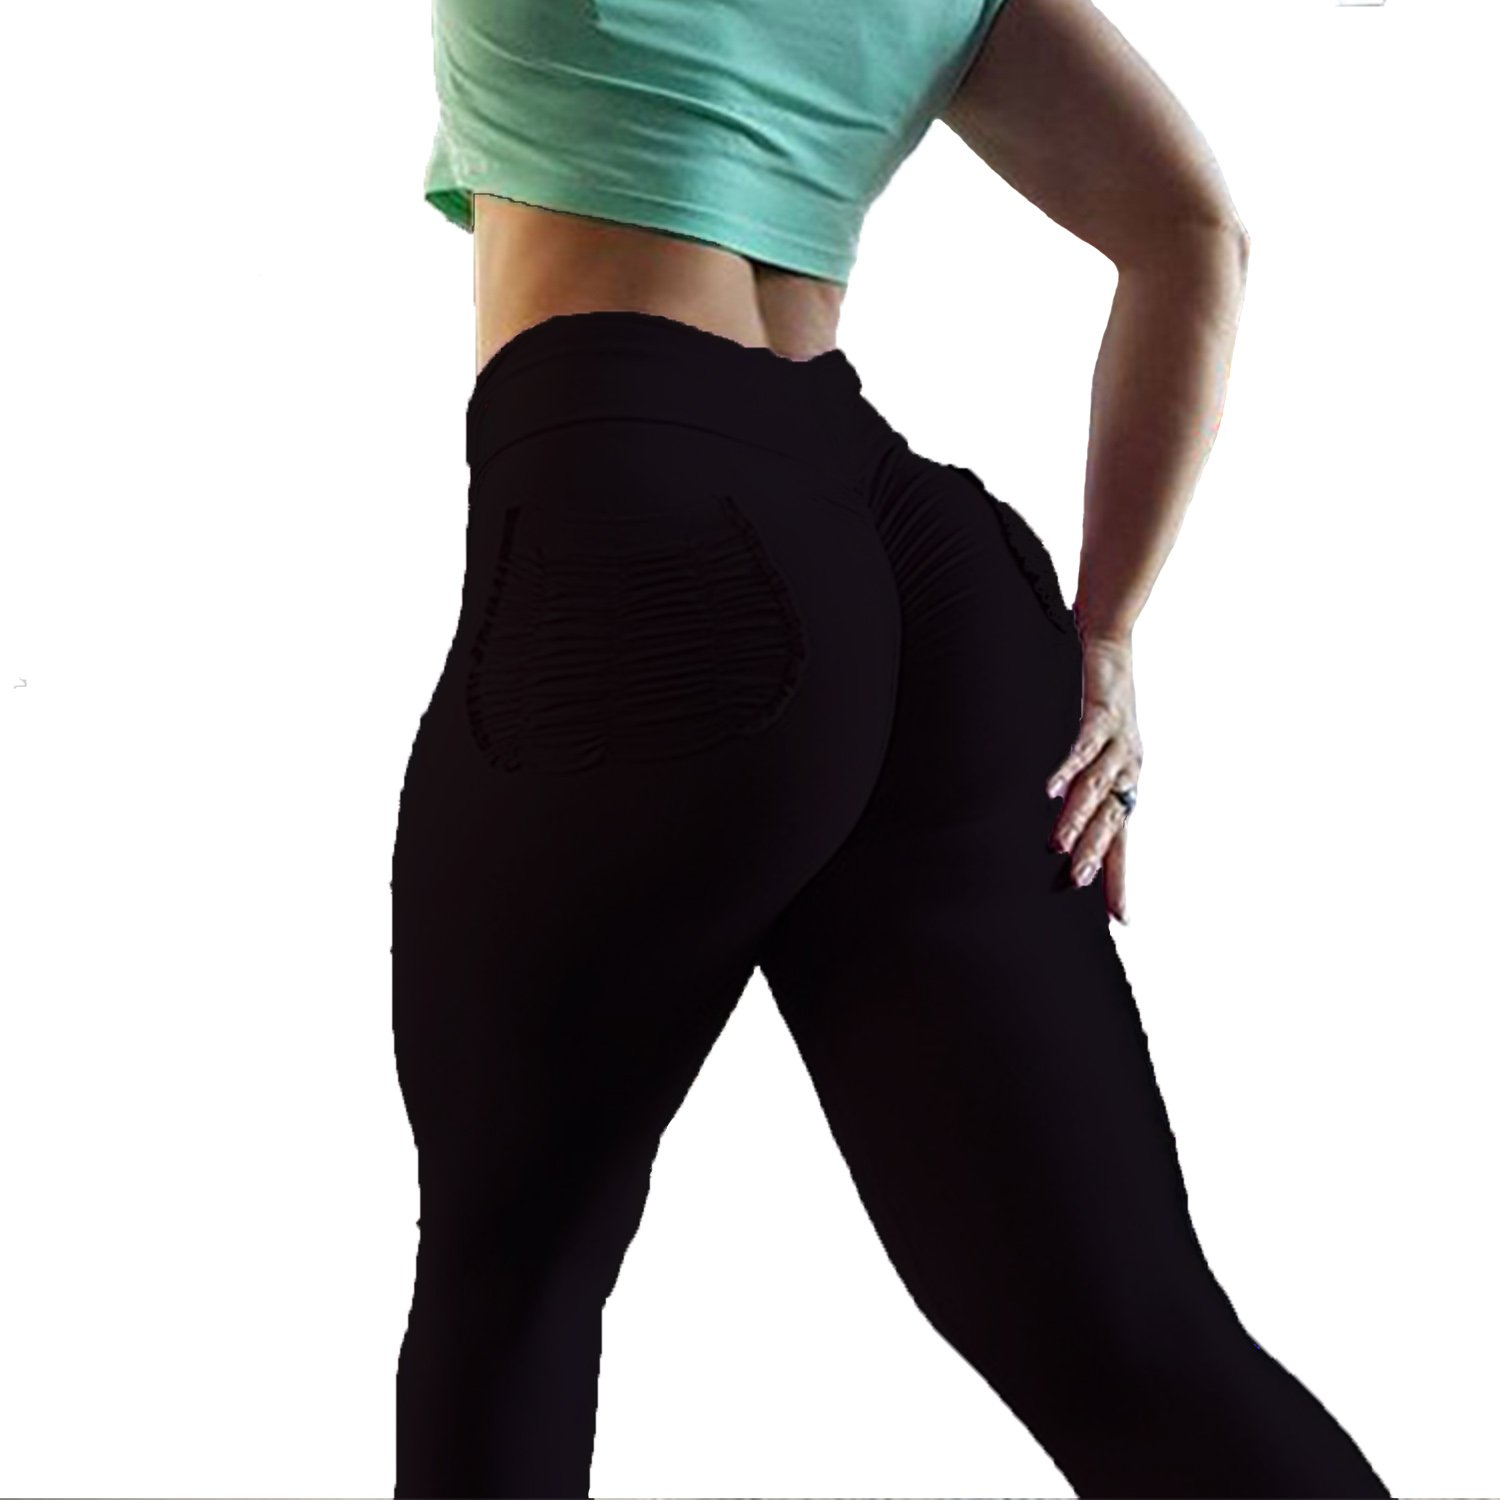 f5e3b6001f098 YOFIT Women Ruched Butt Yoga Pants Lifting Leggings High Waisted with  Pockets Sport Tummy Control Gym - UKsportsOutdoors